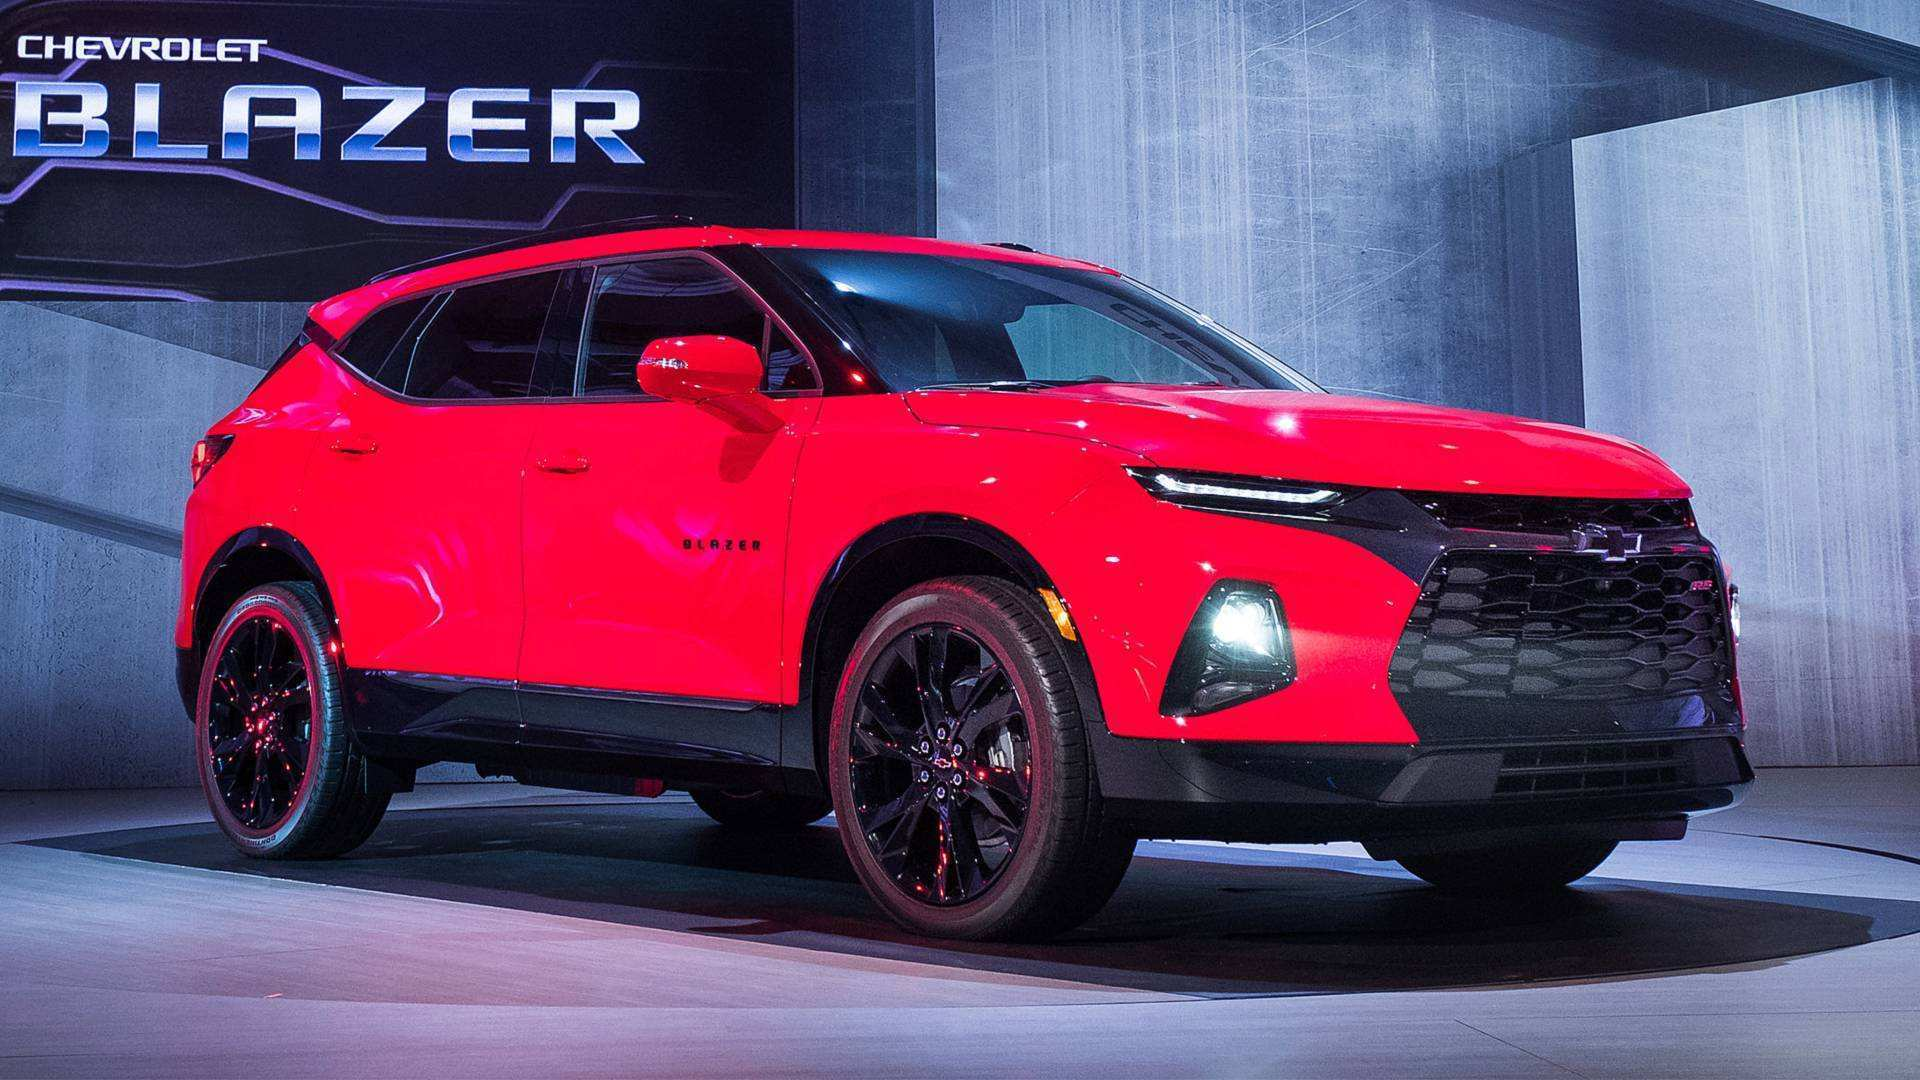 24 Concept of 2020 The Chevy Blazer Redesign by 2020 The Chevy Blazer